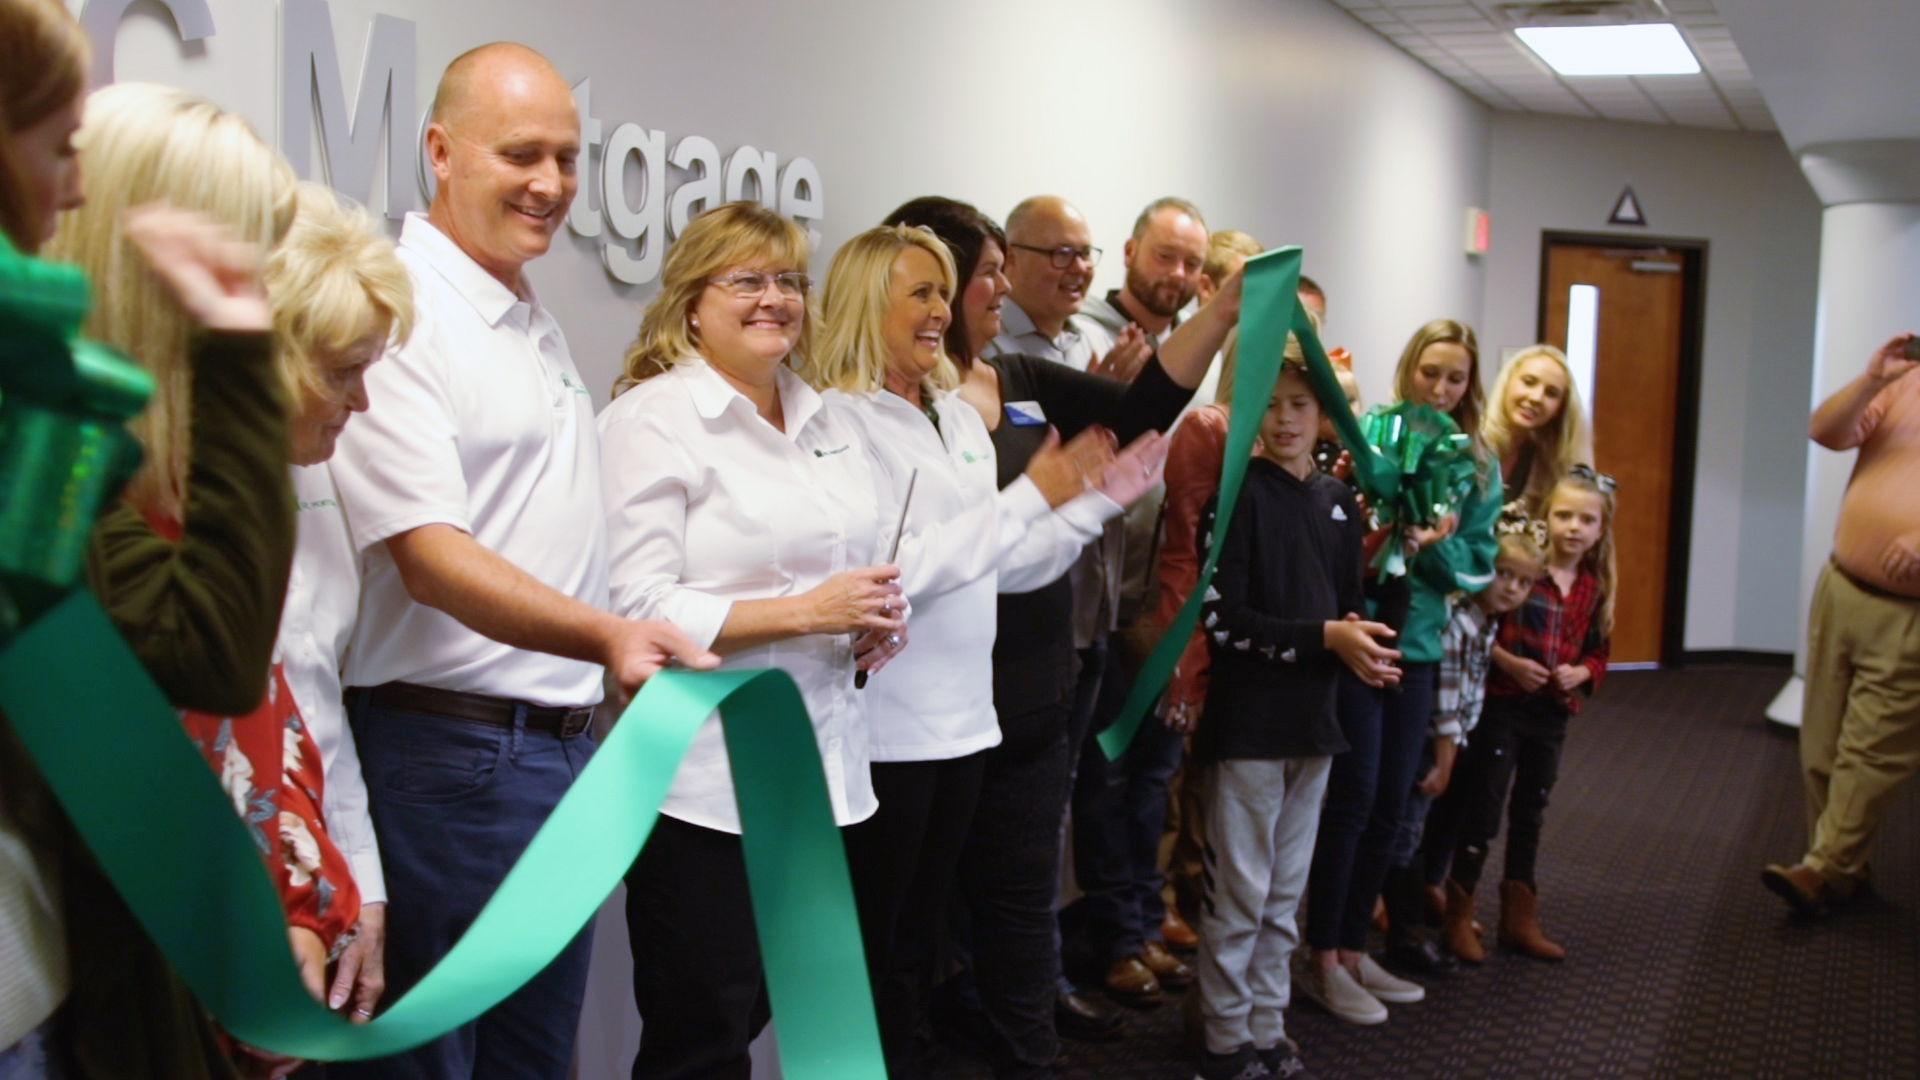 Ribbon cutting at new corporate office location